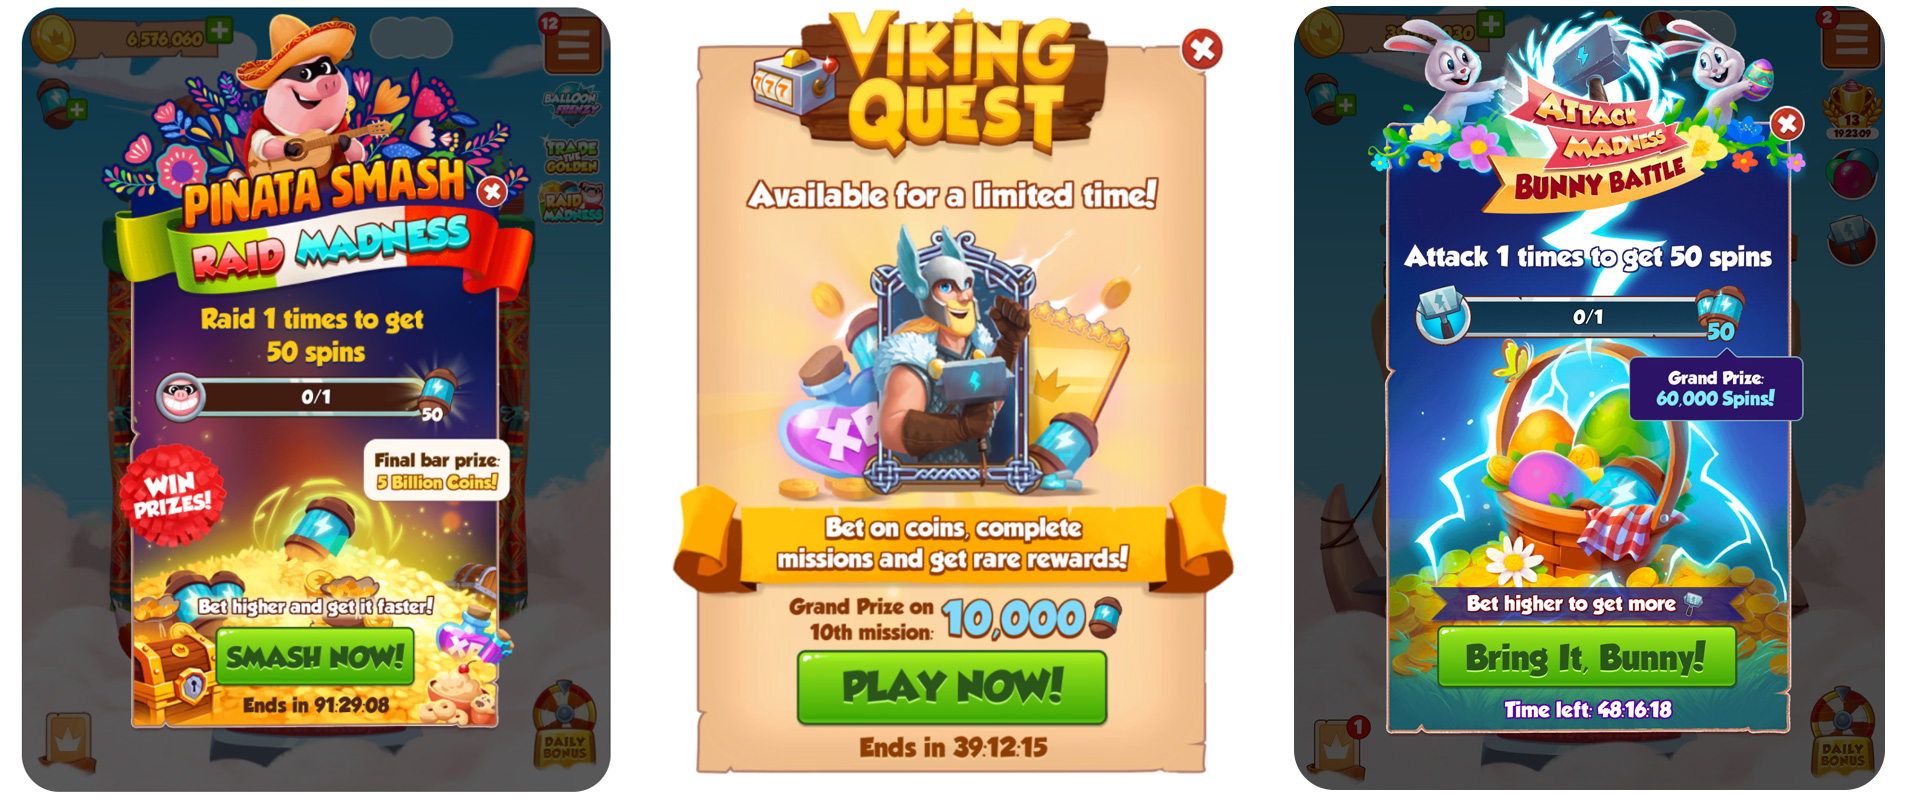 15-Tips-to-Increase-User-Retention-in-Mobile-Games-08-InApps-Promos